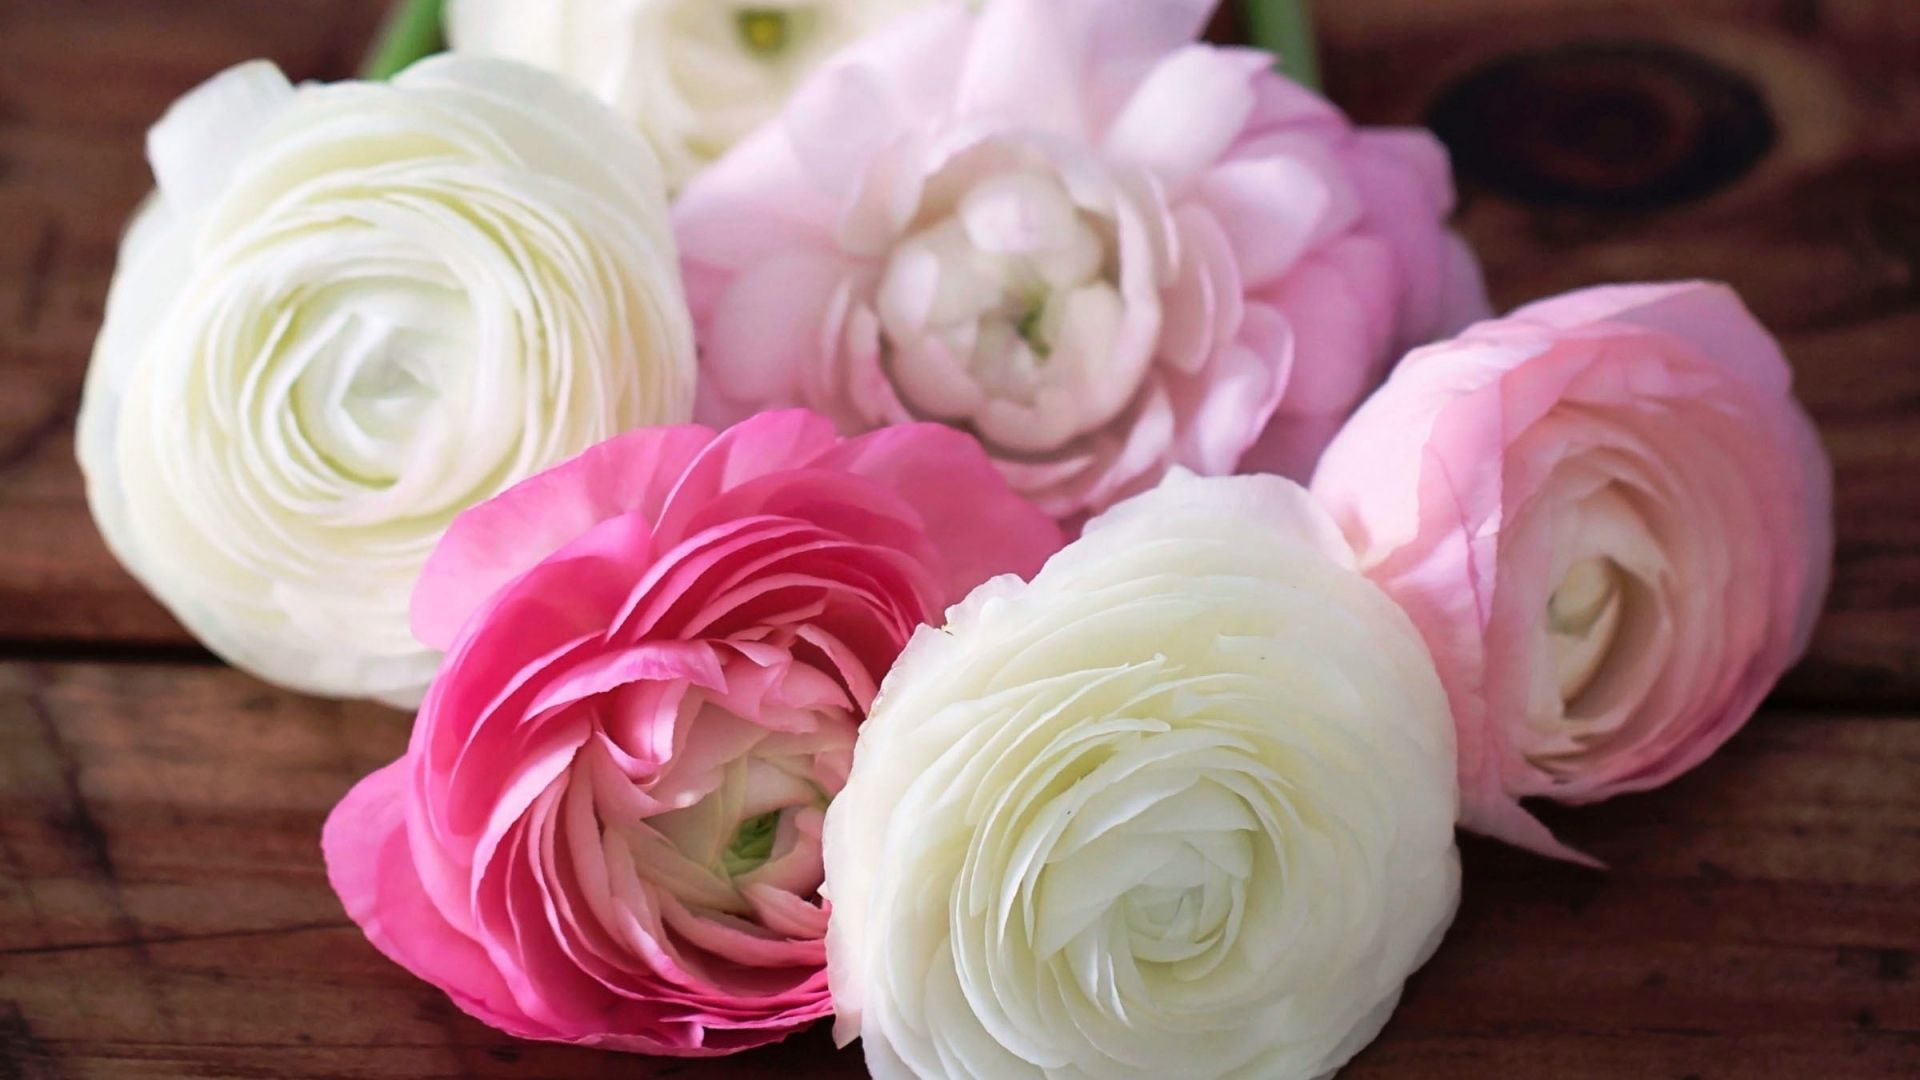 Ranunculus Flower Wallpaper Growing Peonies Ranunculus Flowers Flowers